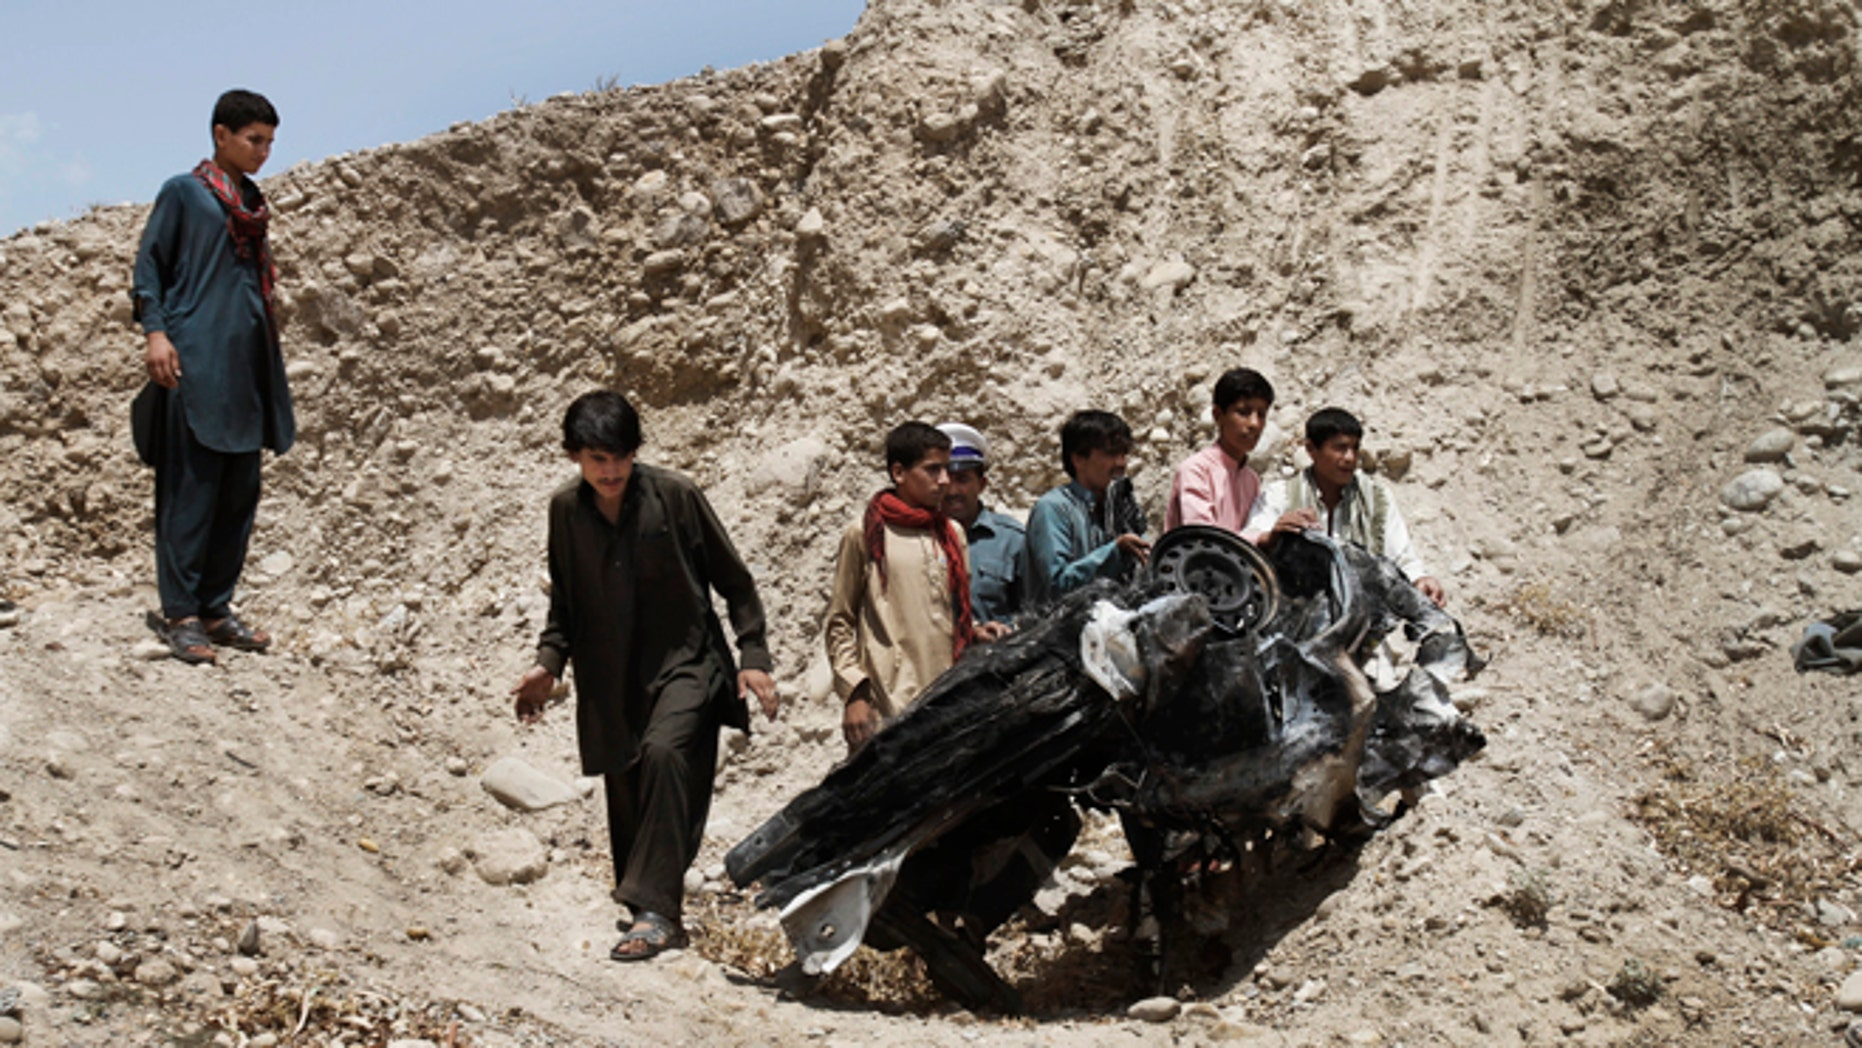 Aug. 12, 2012: Afghans push parts of a damaged vehicle off a hill after a roadside explosion on the outskirts of Laghman province east of Kabul, Afghanistan.